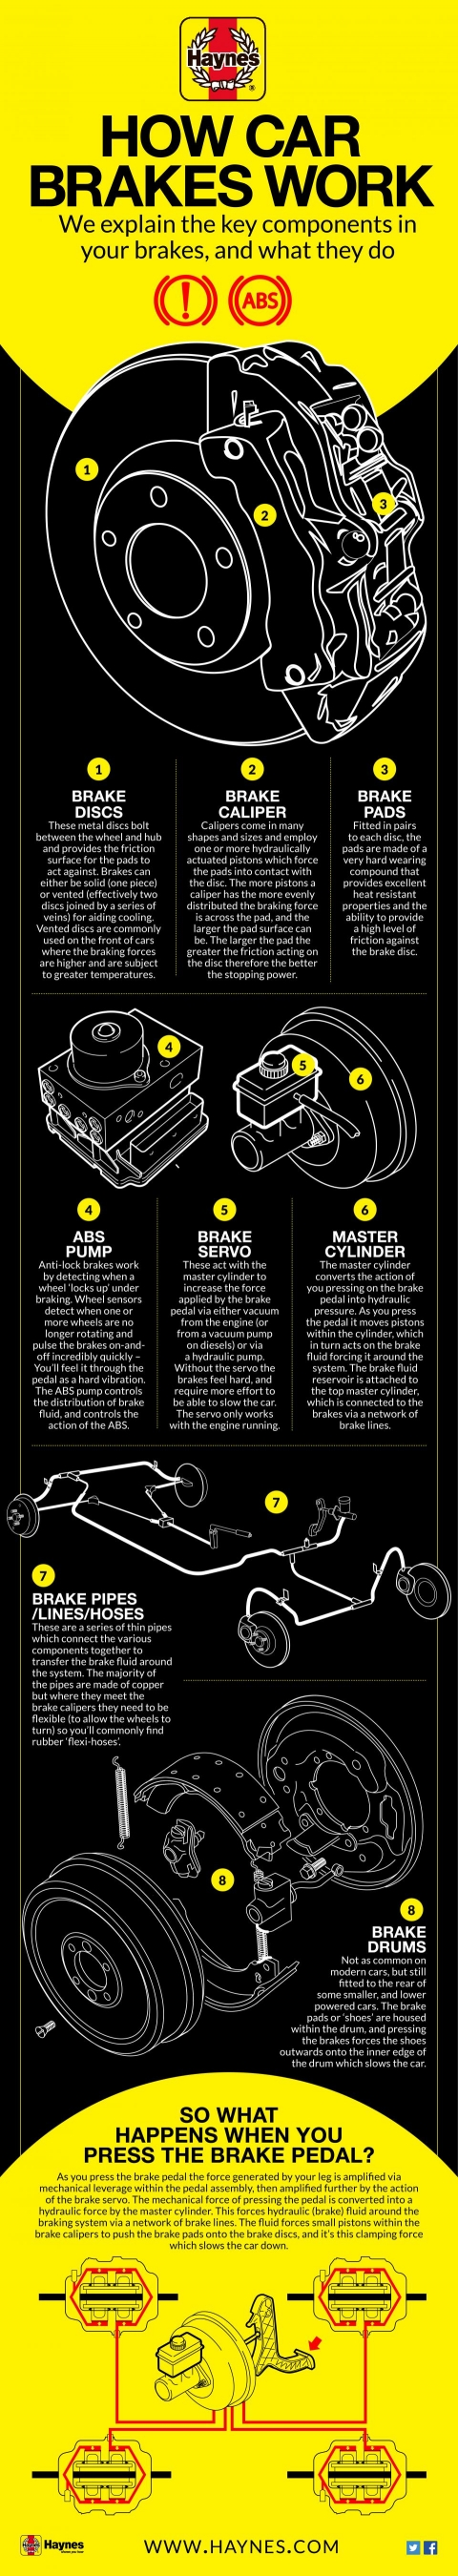 Brakes: The Key Components and How They Work | Haynes Manuals